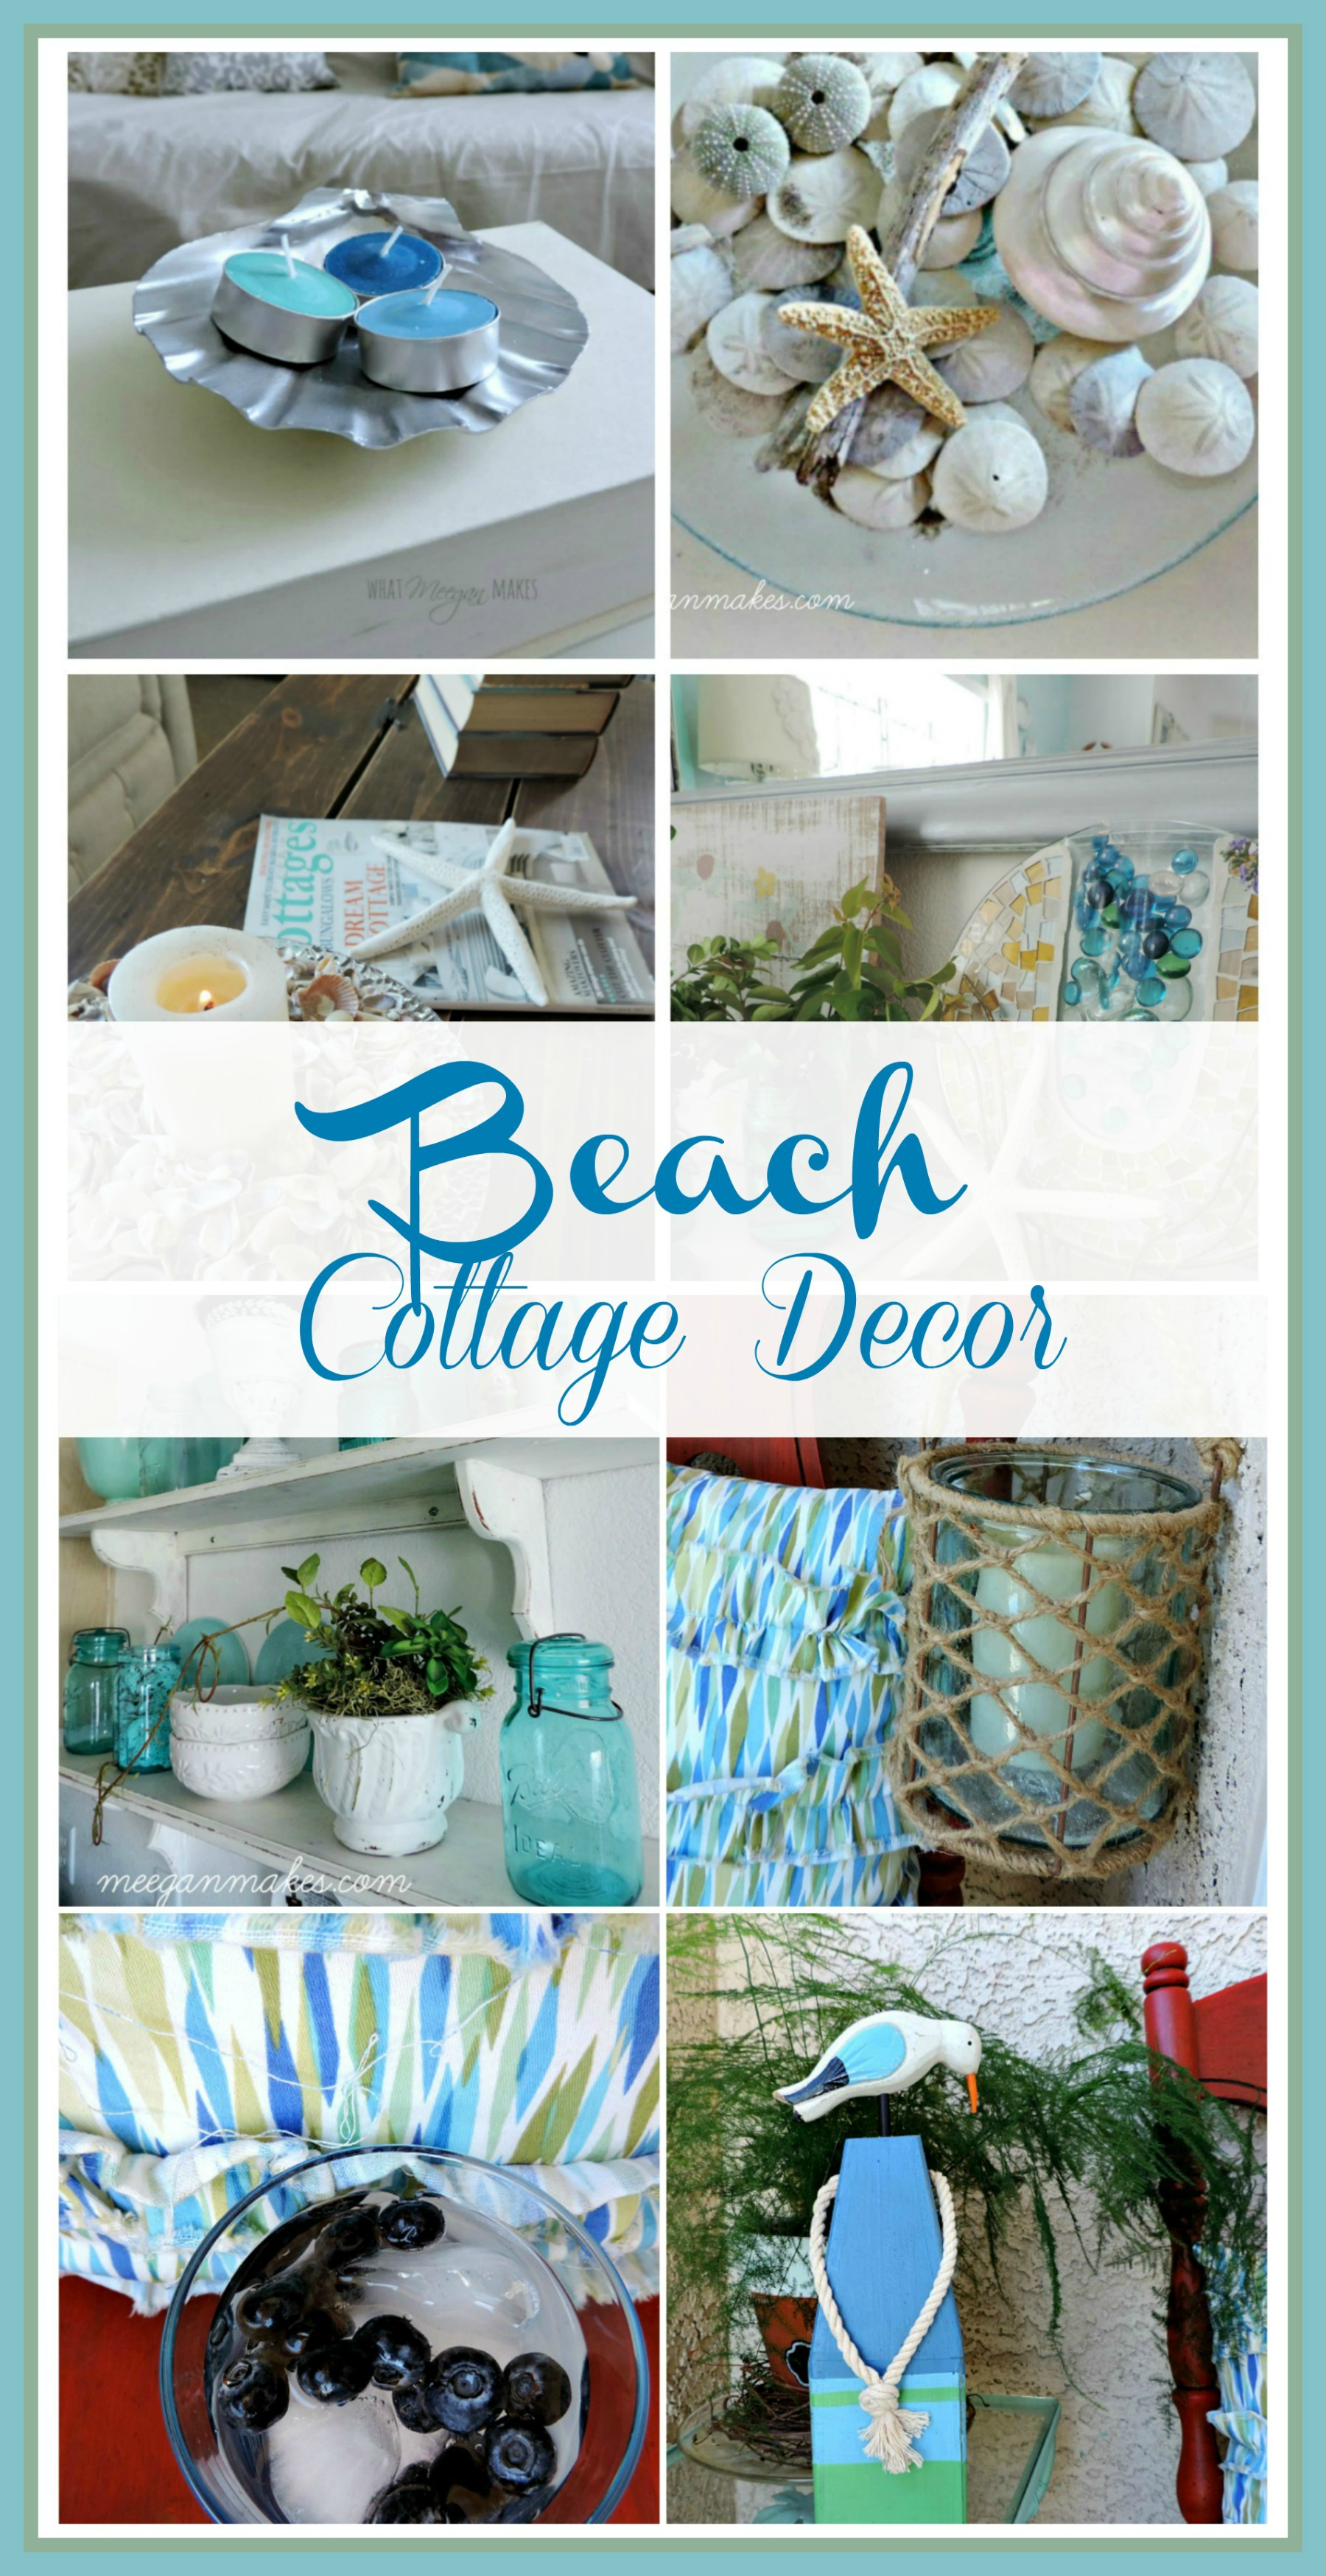 Best Beach Cottage Decor Waterside Blog Tour What Meegan Makes This Month